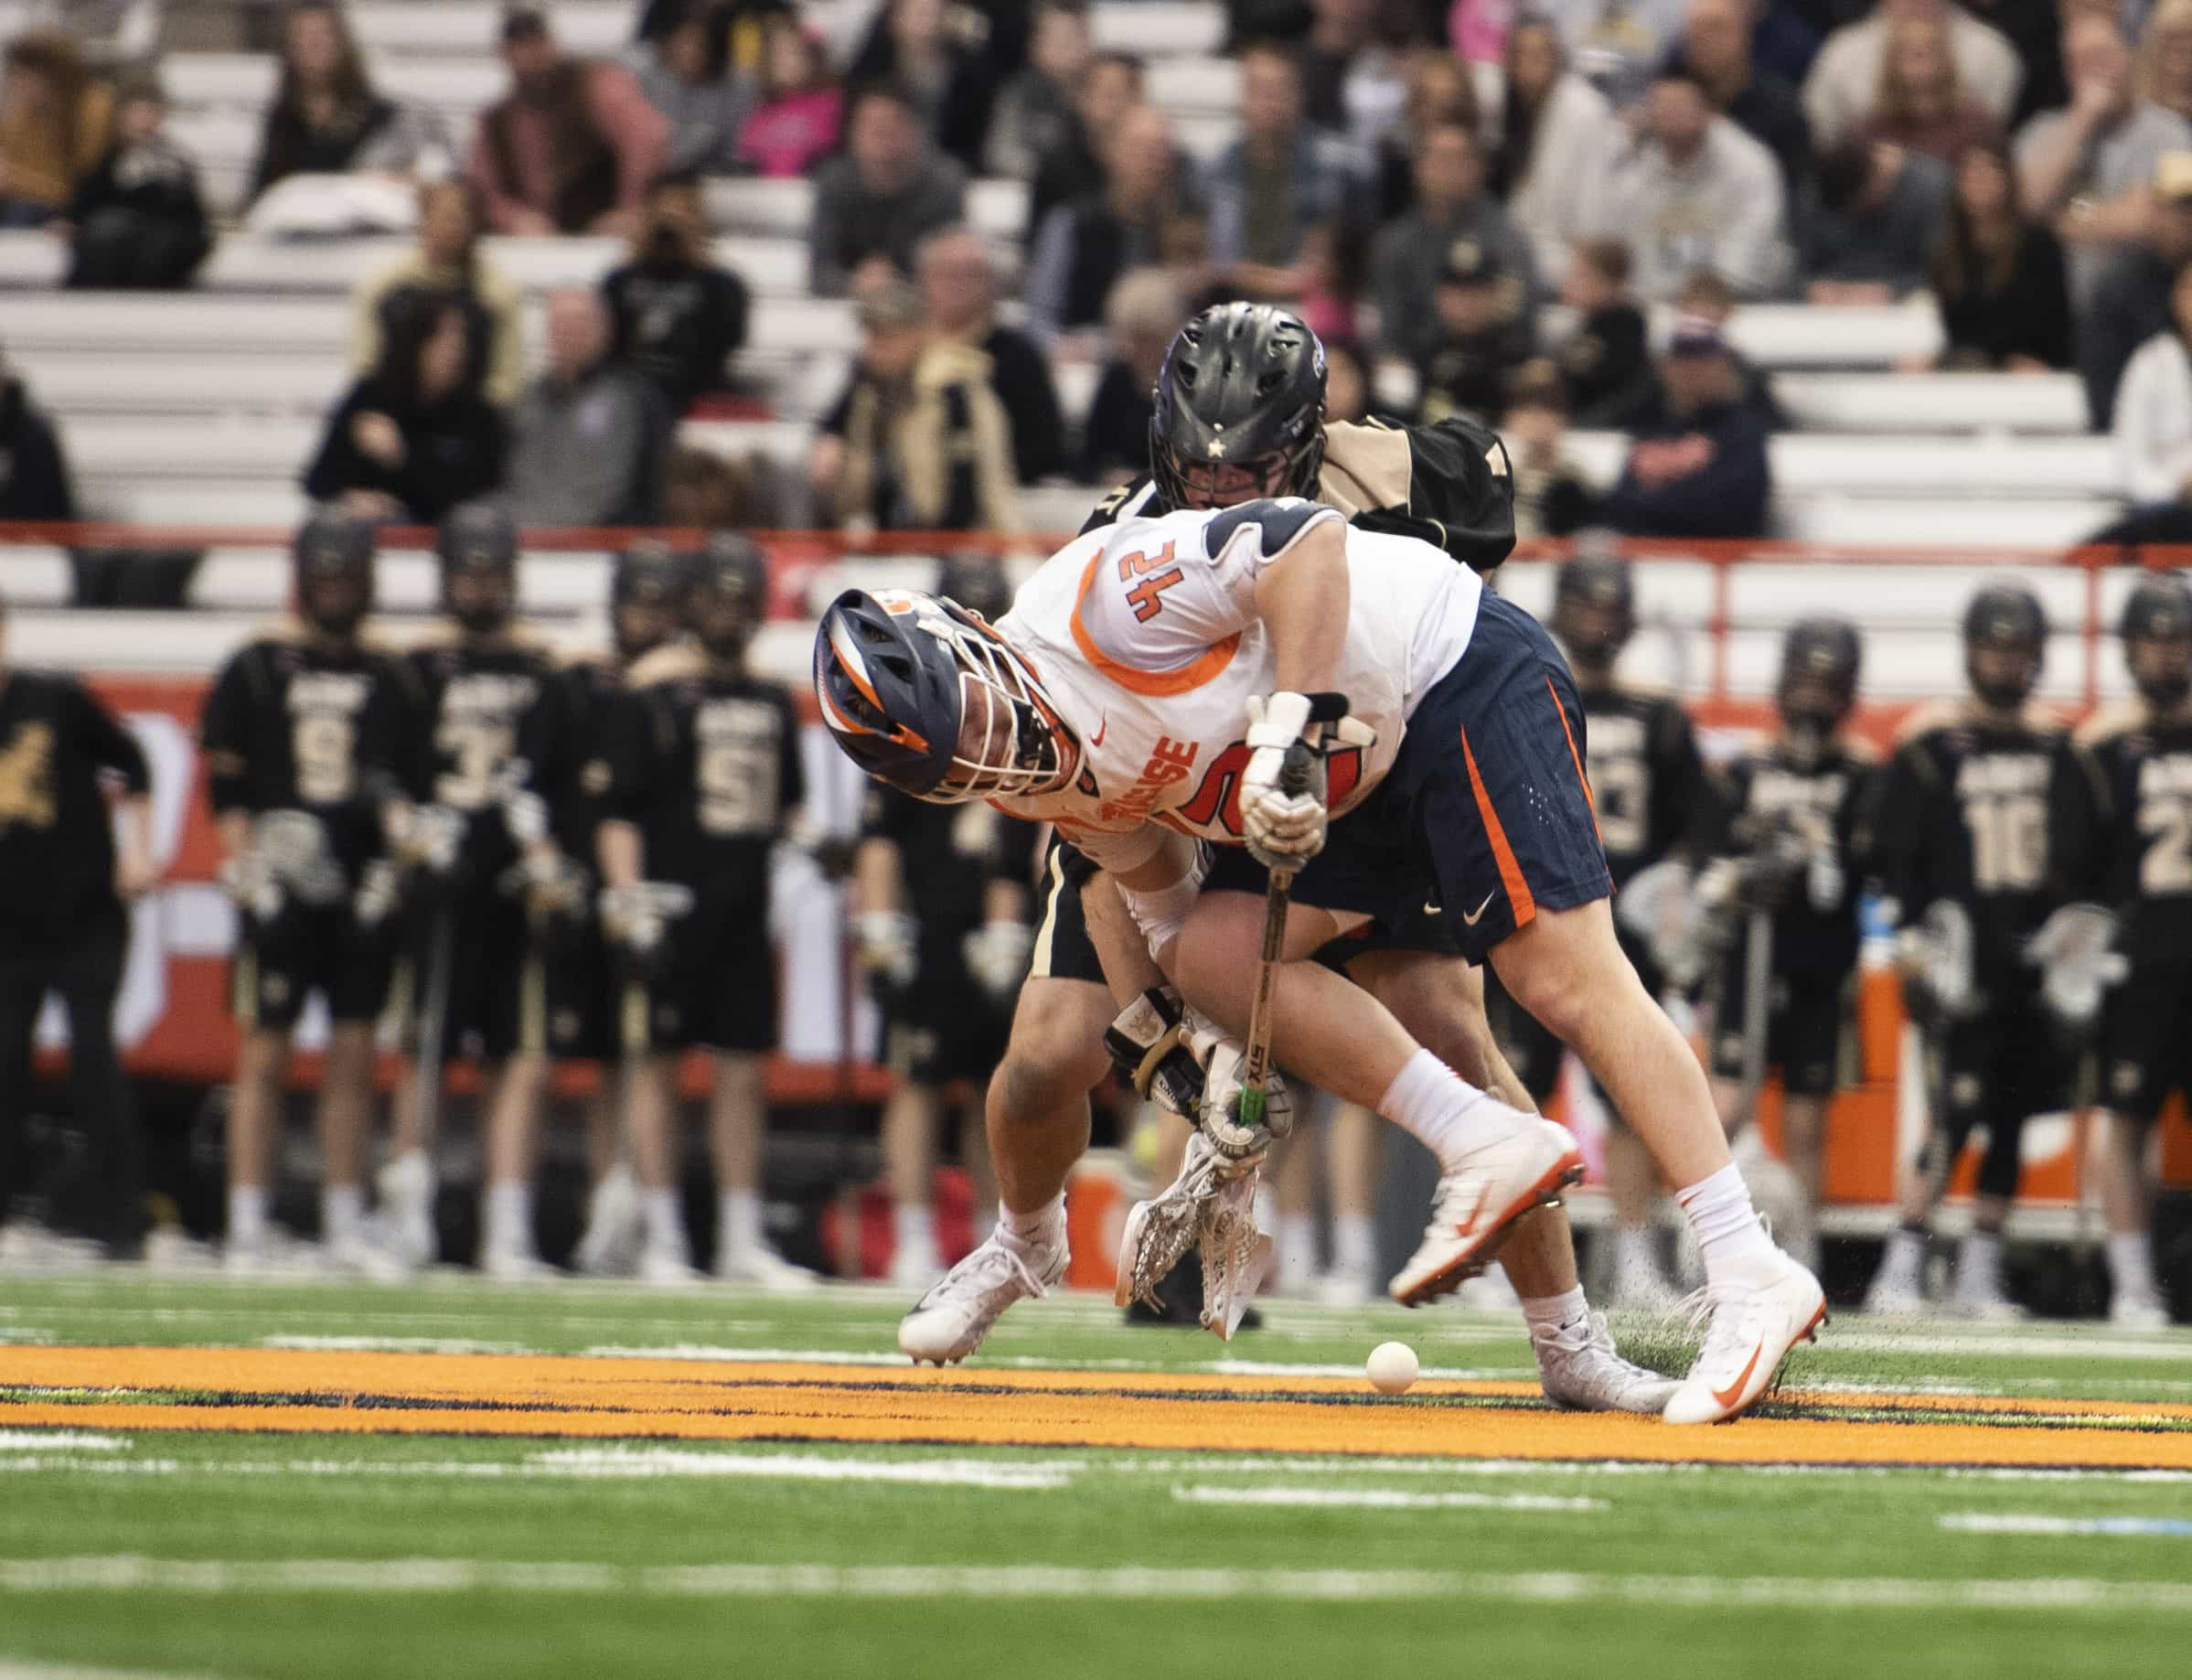 Junior Danny Varello contests for the ball during the faceoff during SU's 10-8 win over Army.